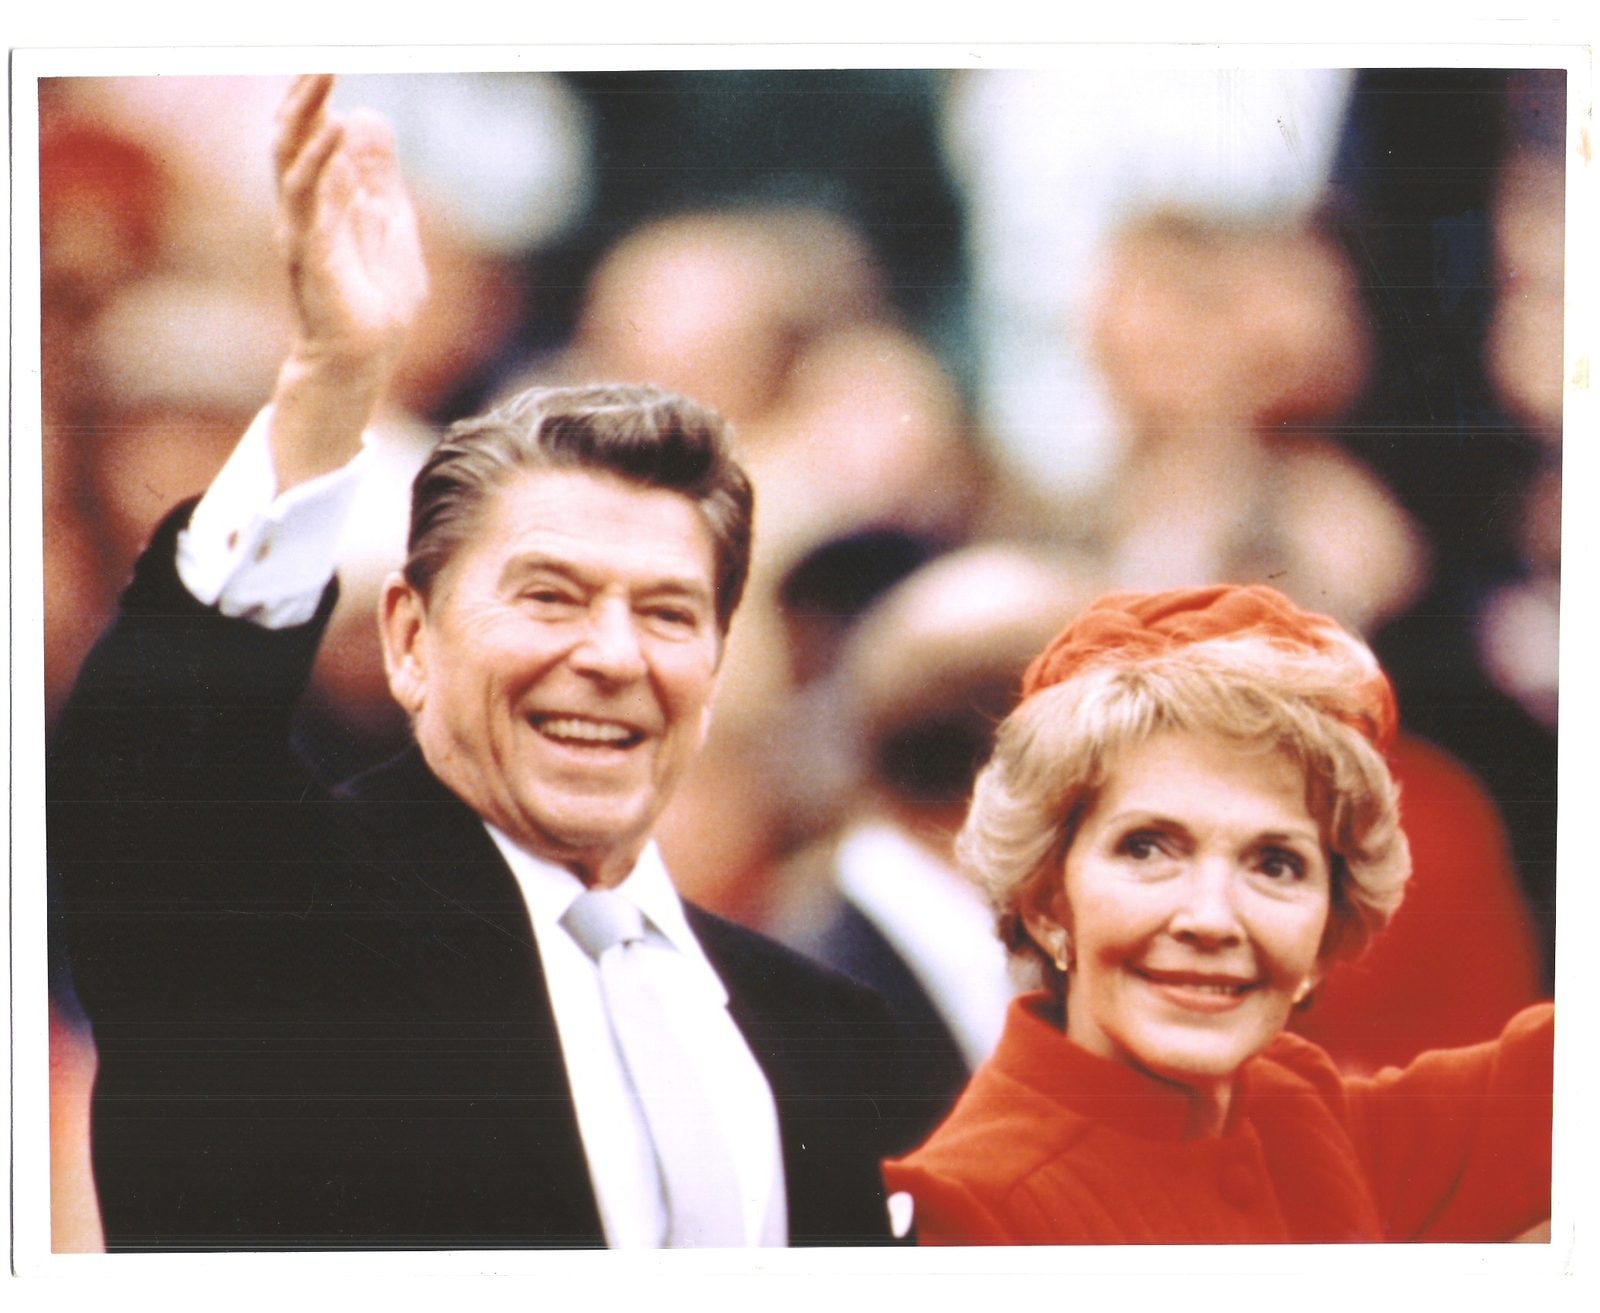 Primary image for Ronald and Nancy Reagan President Vintage 8X10 Color Political Memorabilia Photo